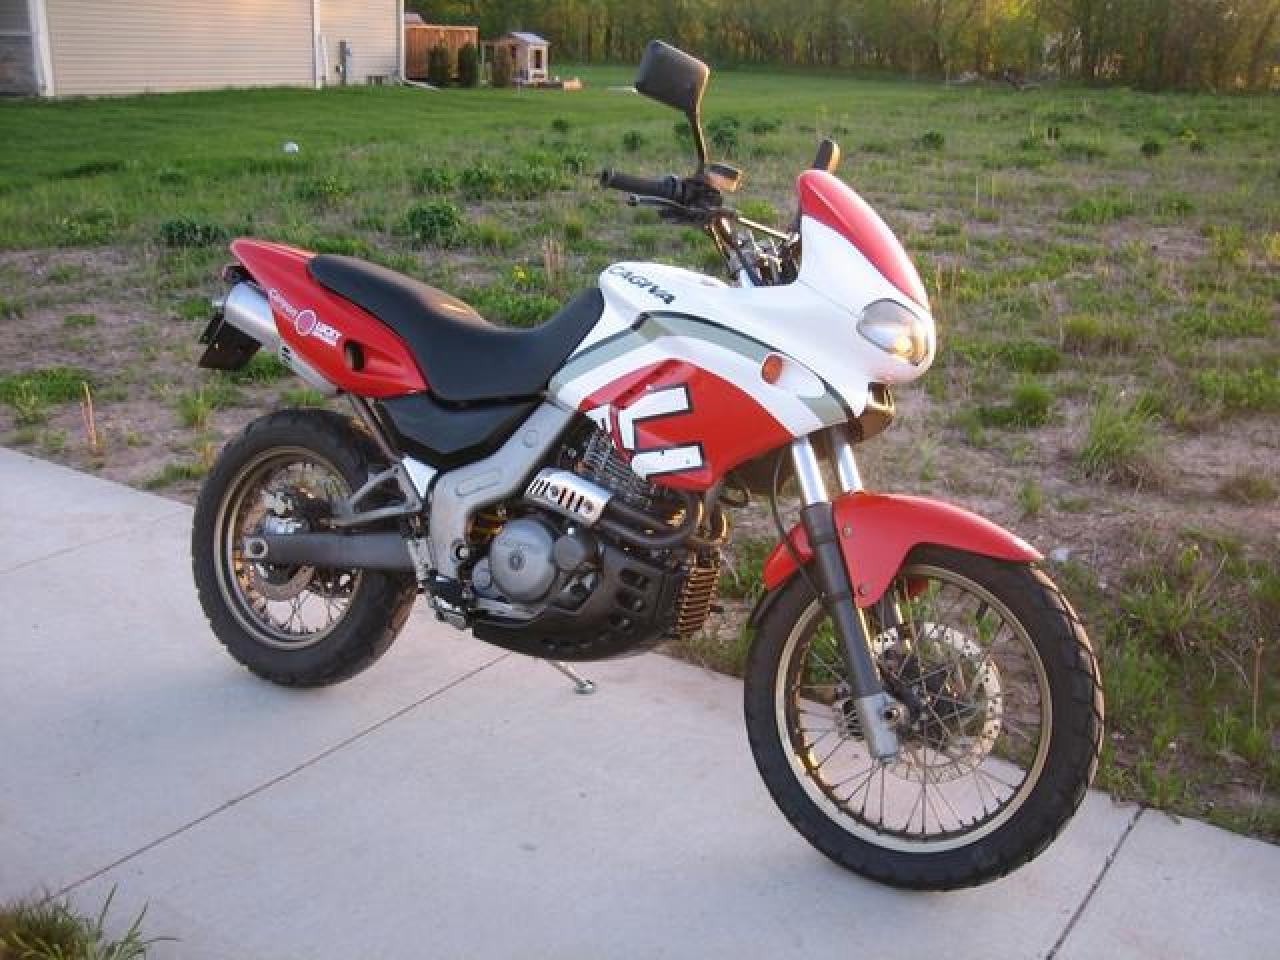 Cagiva Canyon 500 images #69829